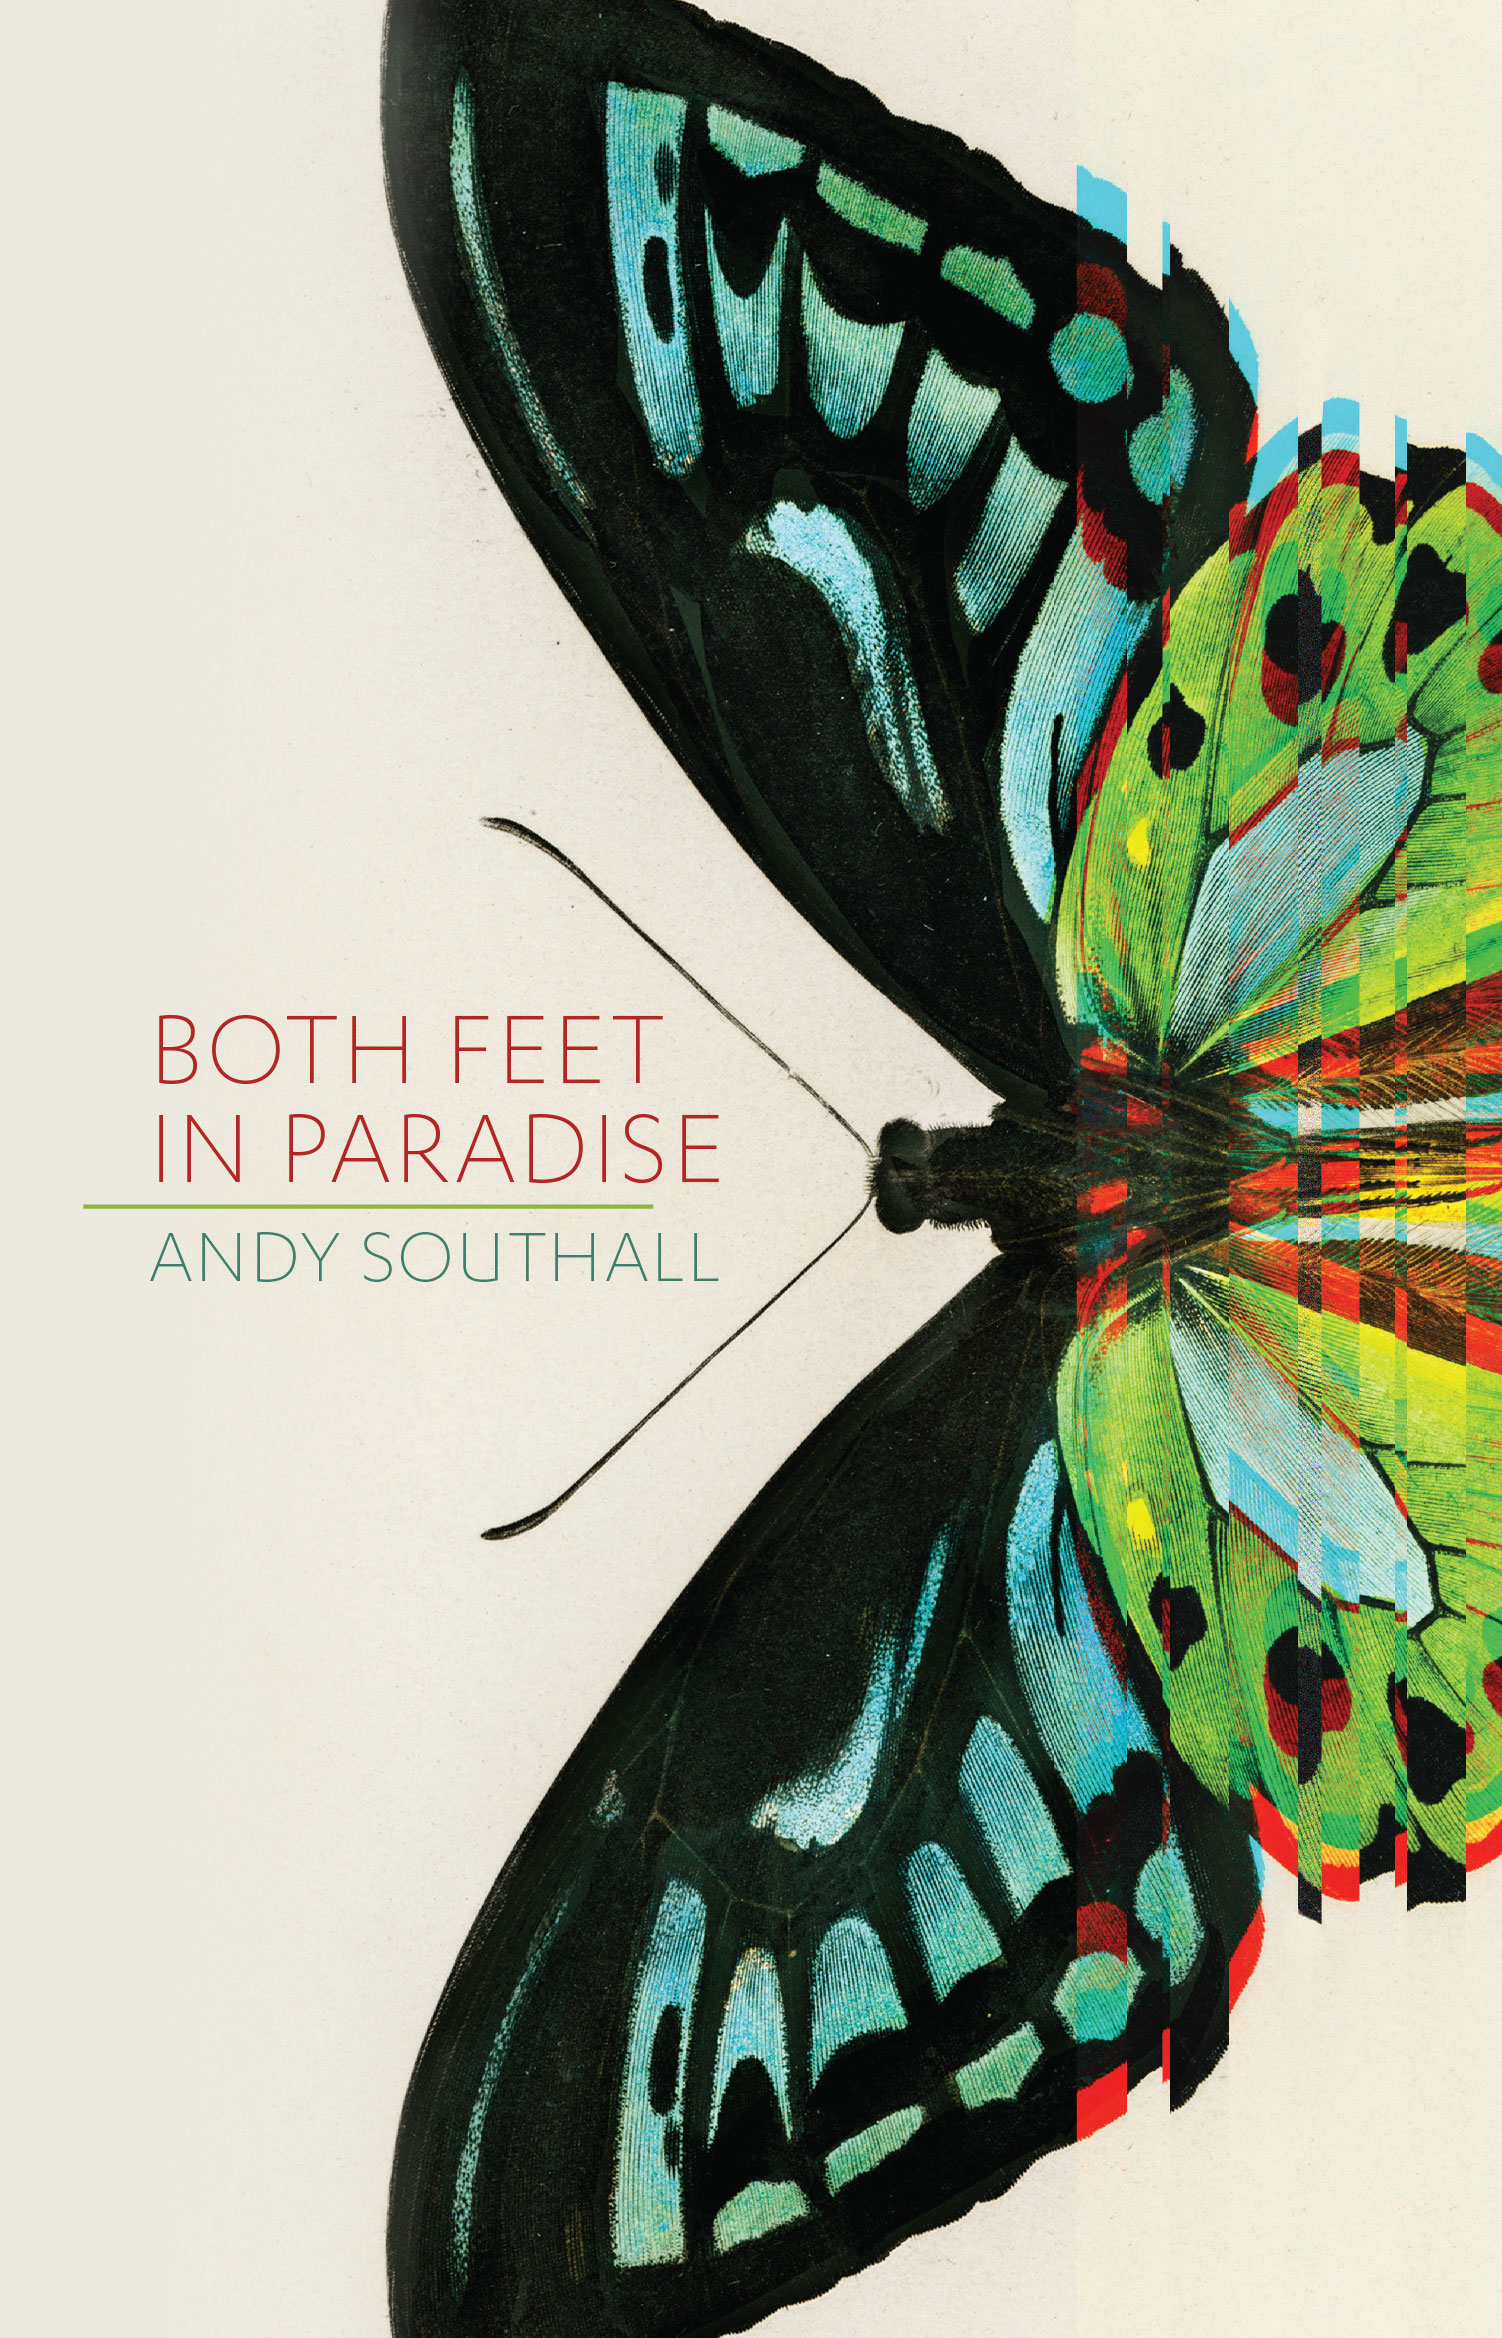 Both-feet-in-paradise-web-cover